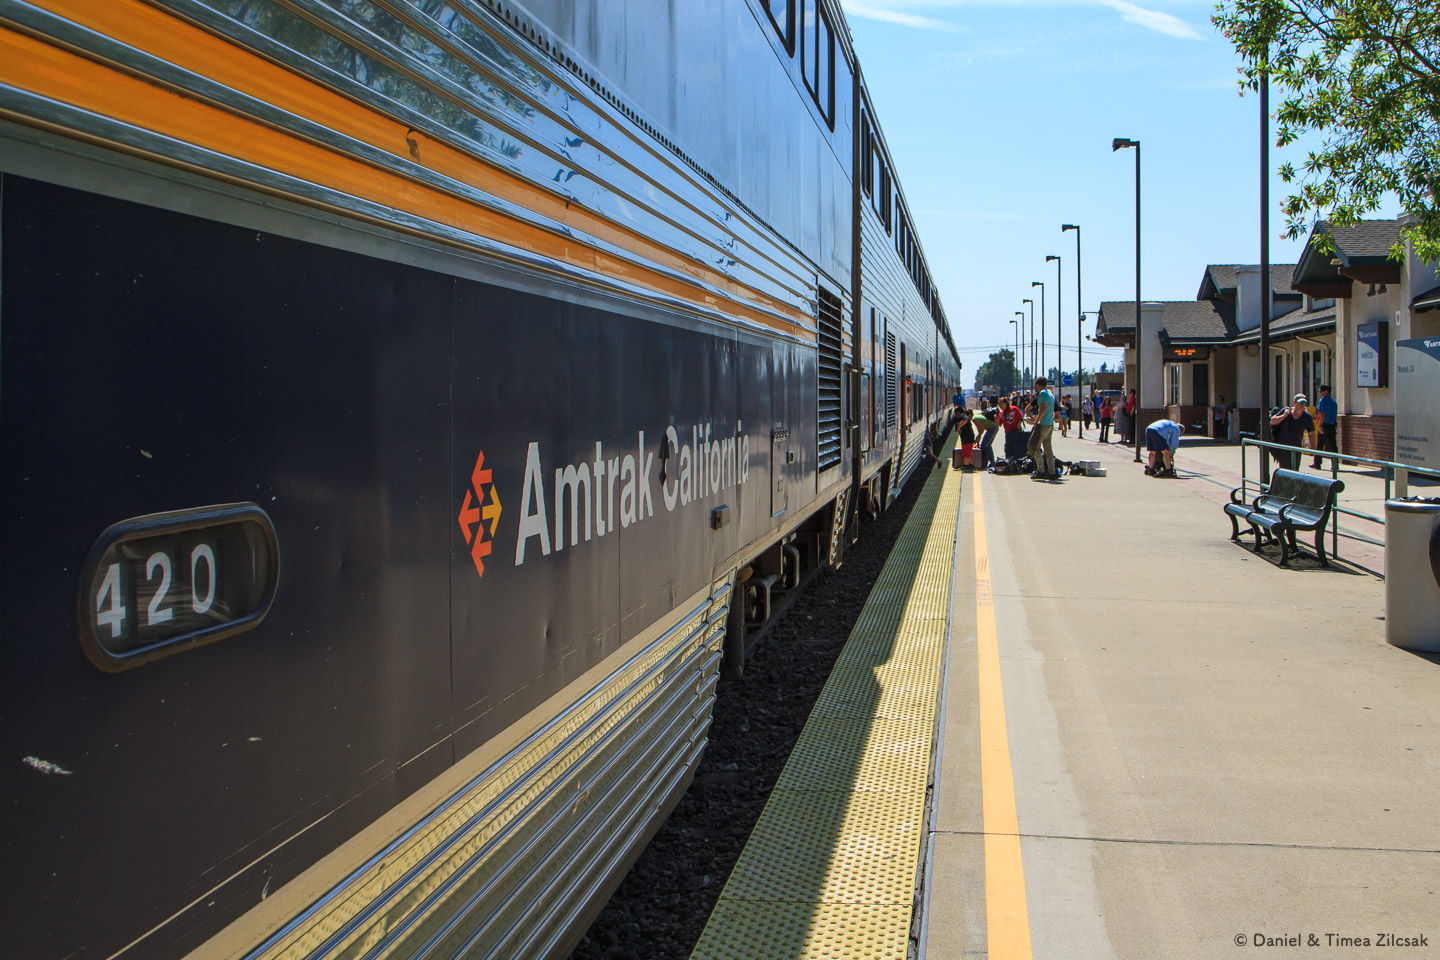 Riding Amtrak from Fresno to Merced, on our way to Yosemite Valley, California